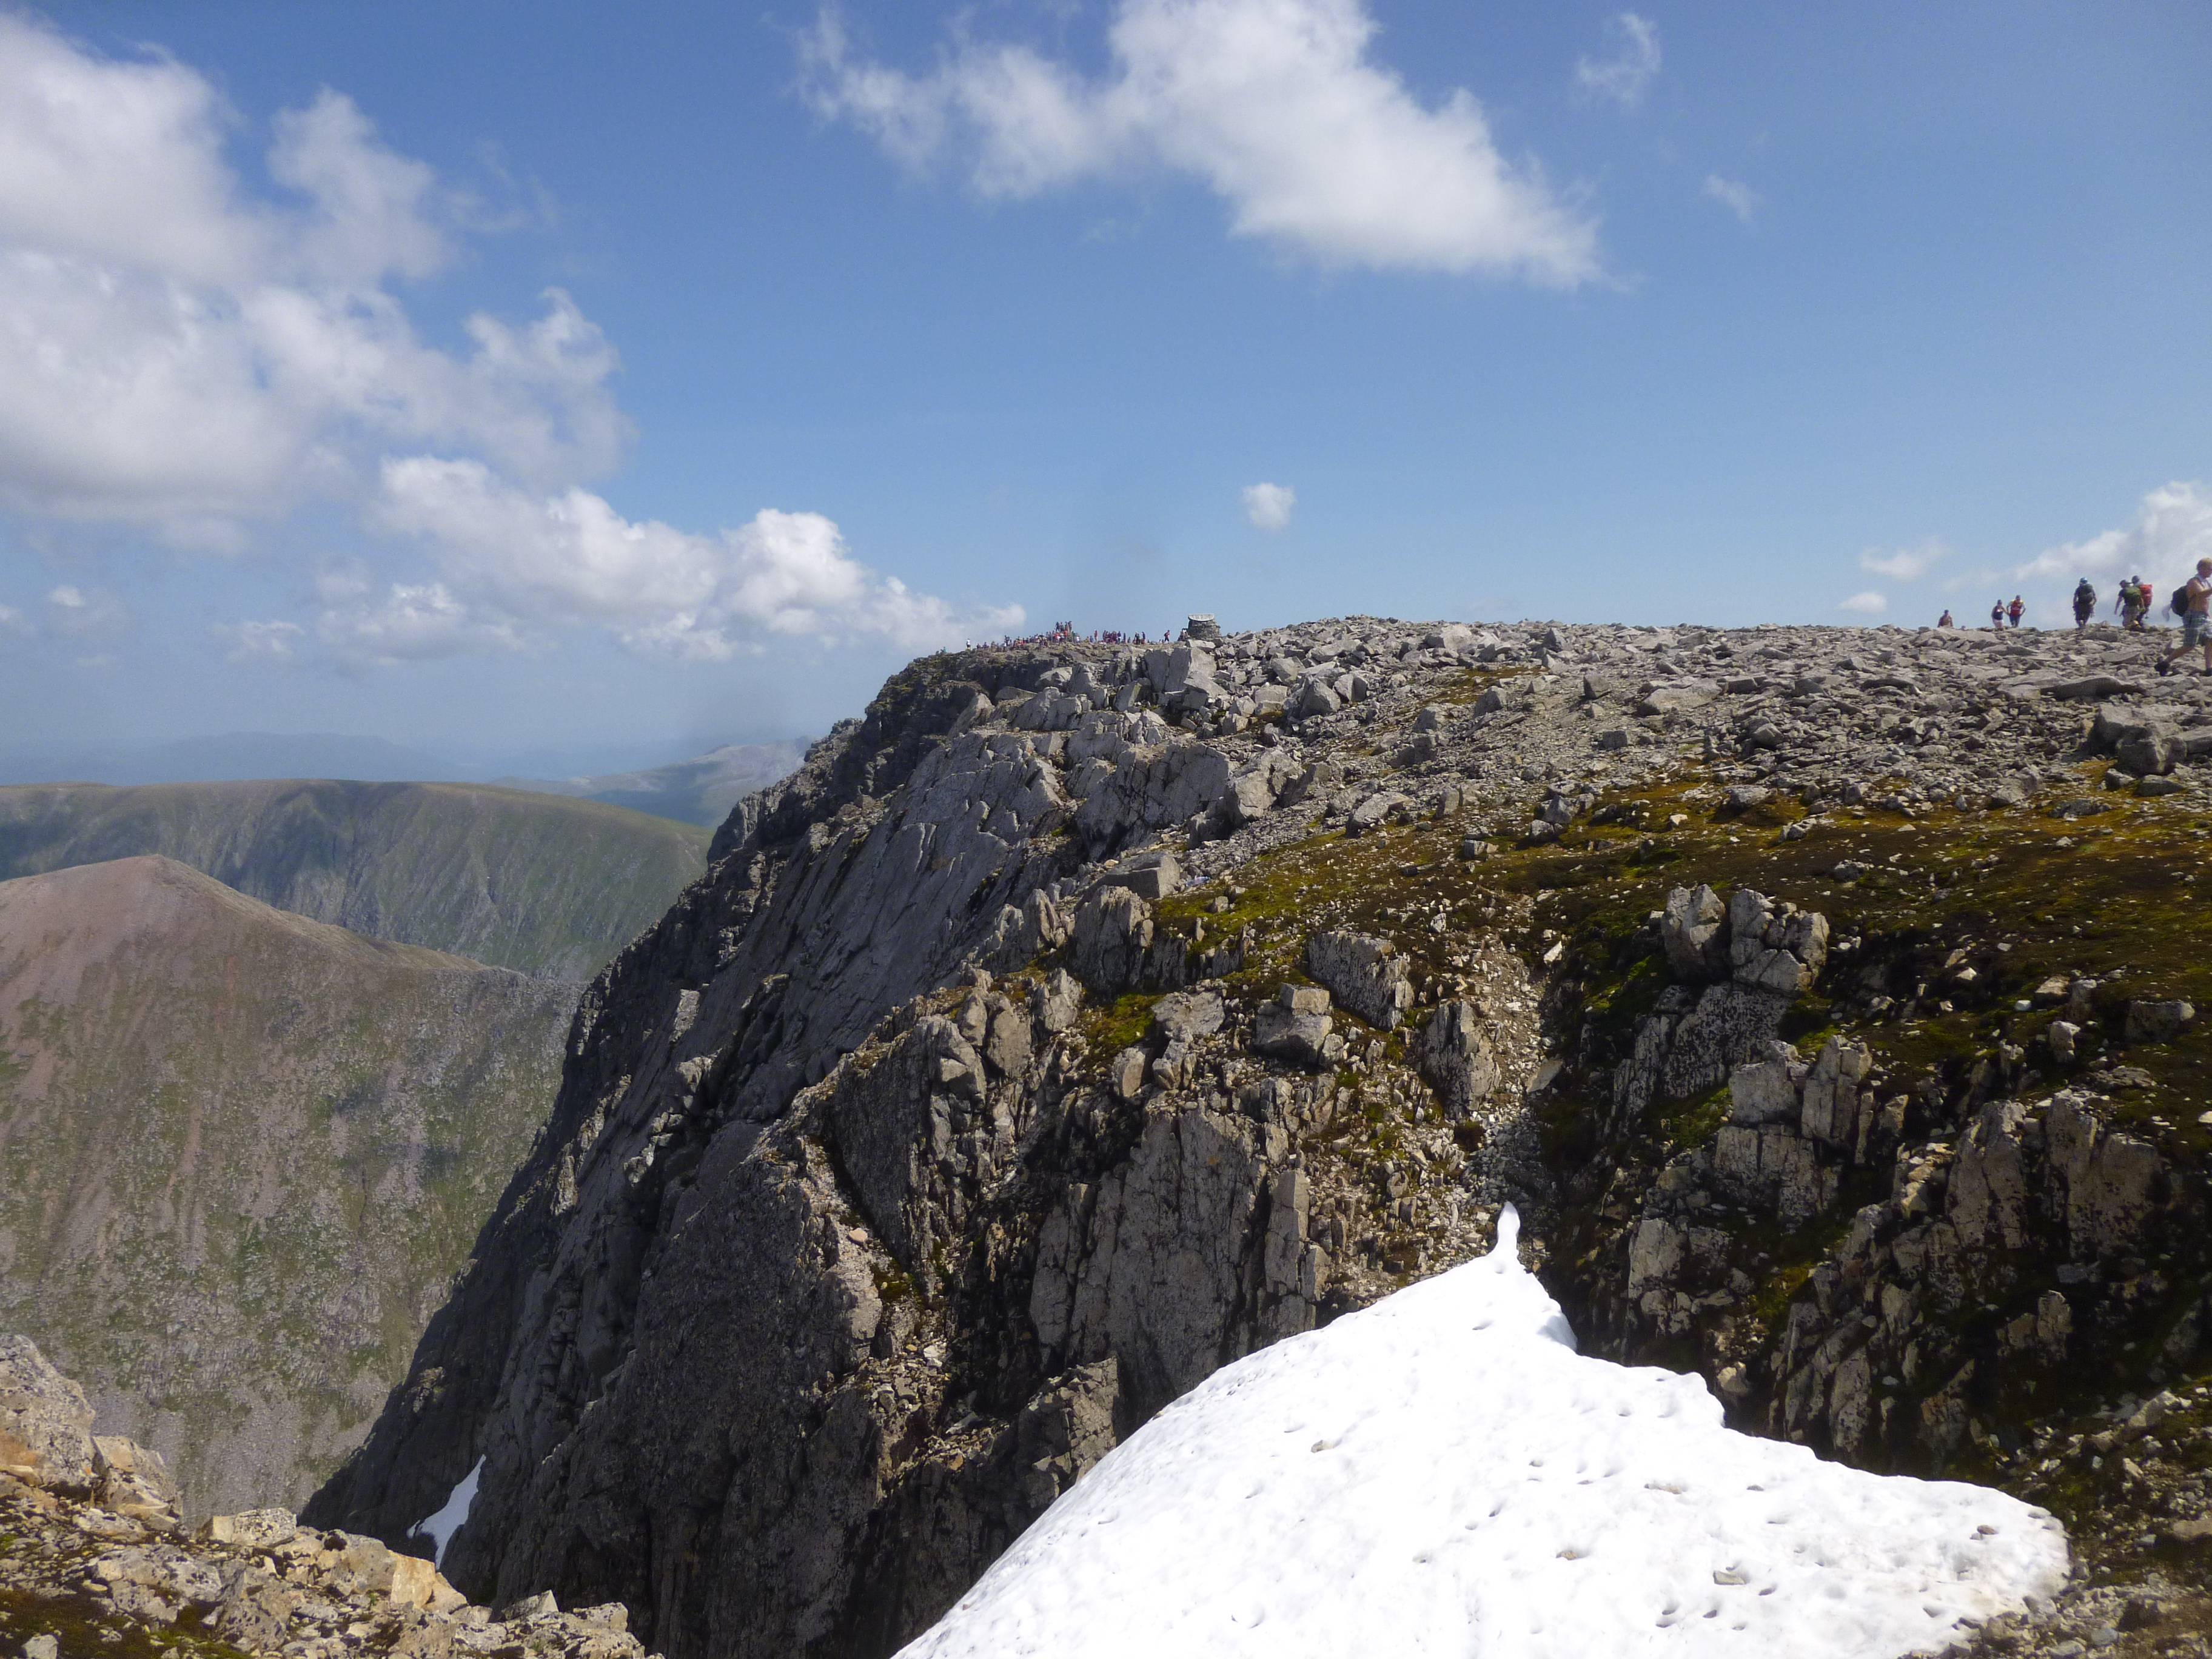 The Summit of Ben Nevis viewed from Tower Gully. Guided Ben Nevis walks